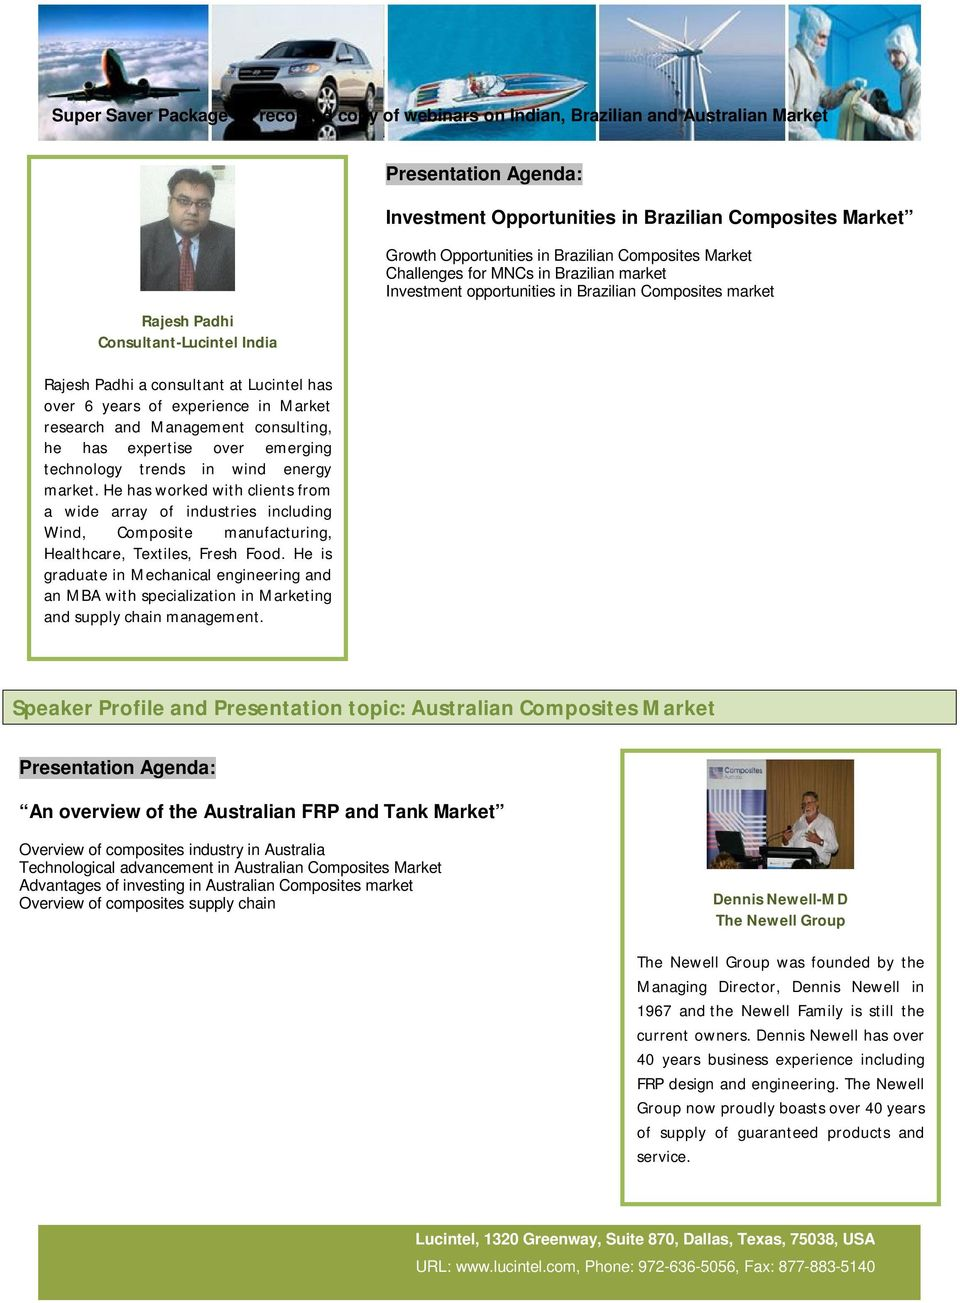 Opportunities and Competitiveness of Indian, Brazilian